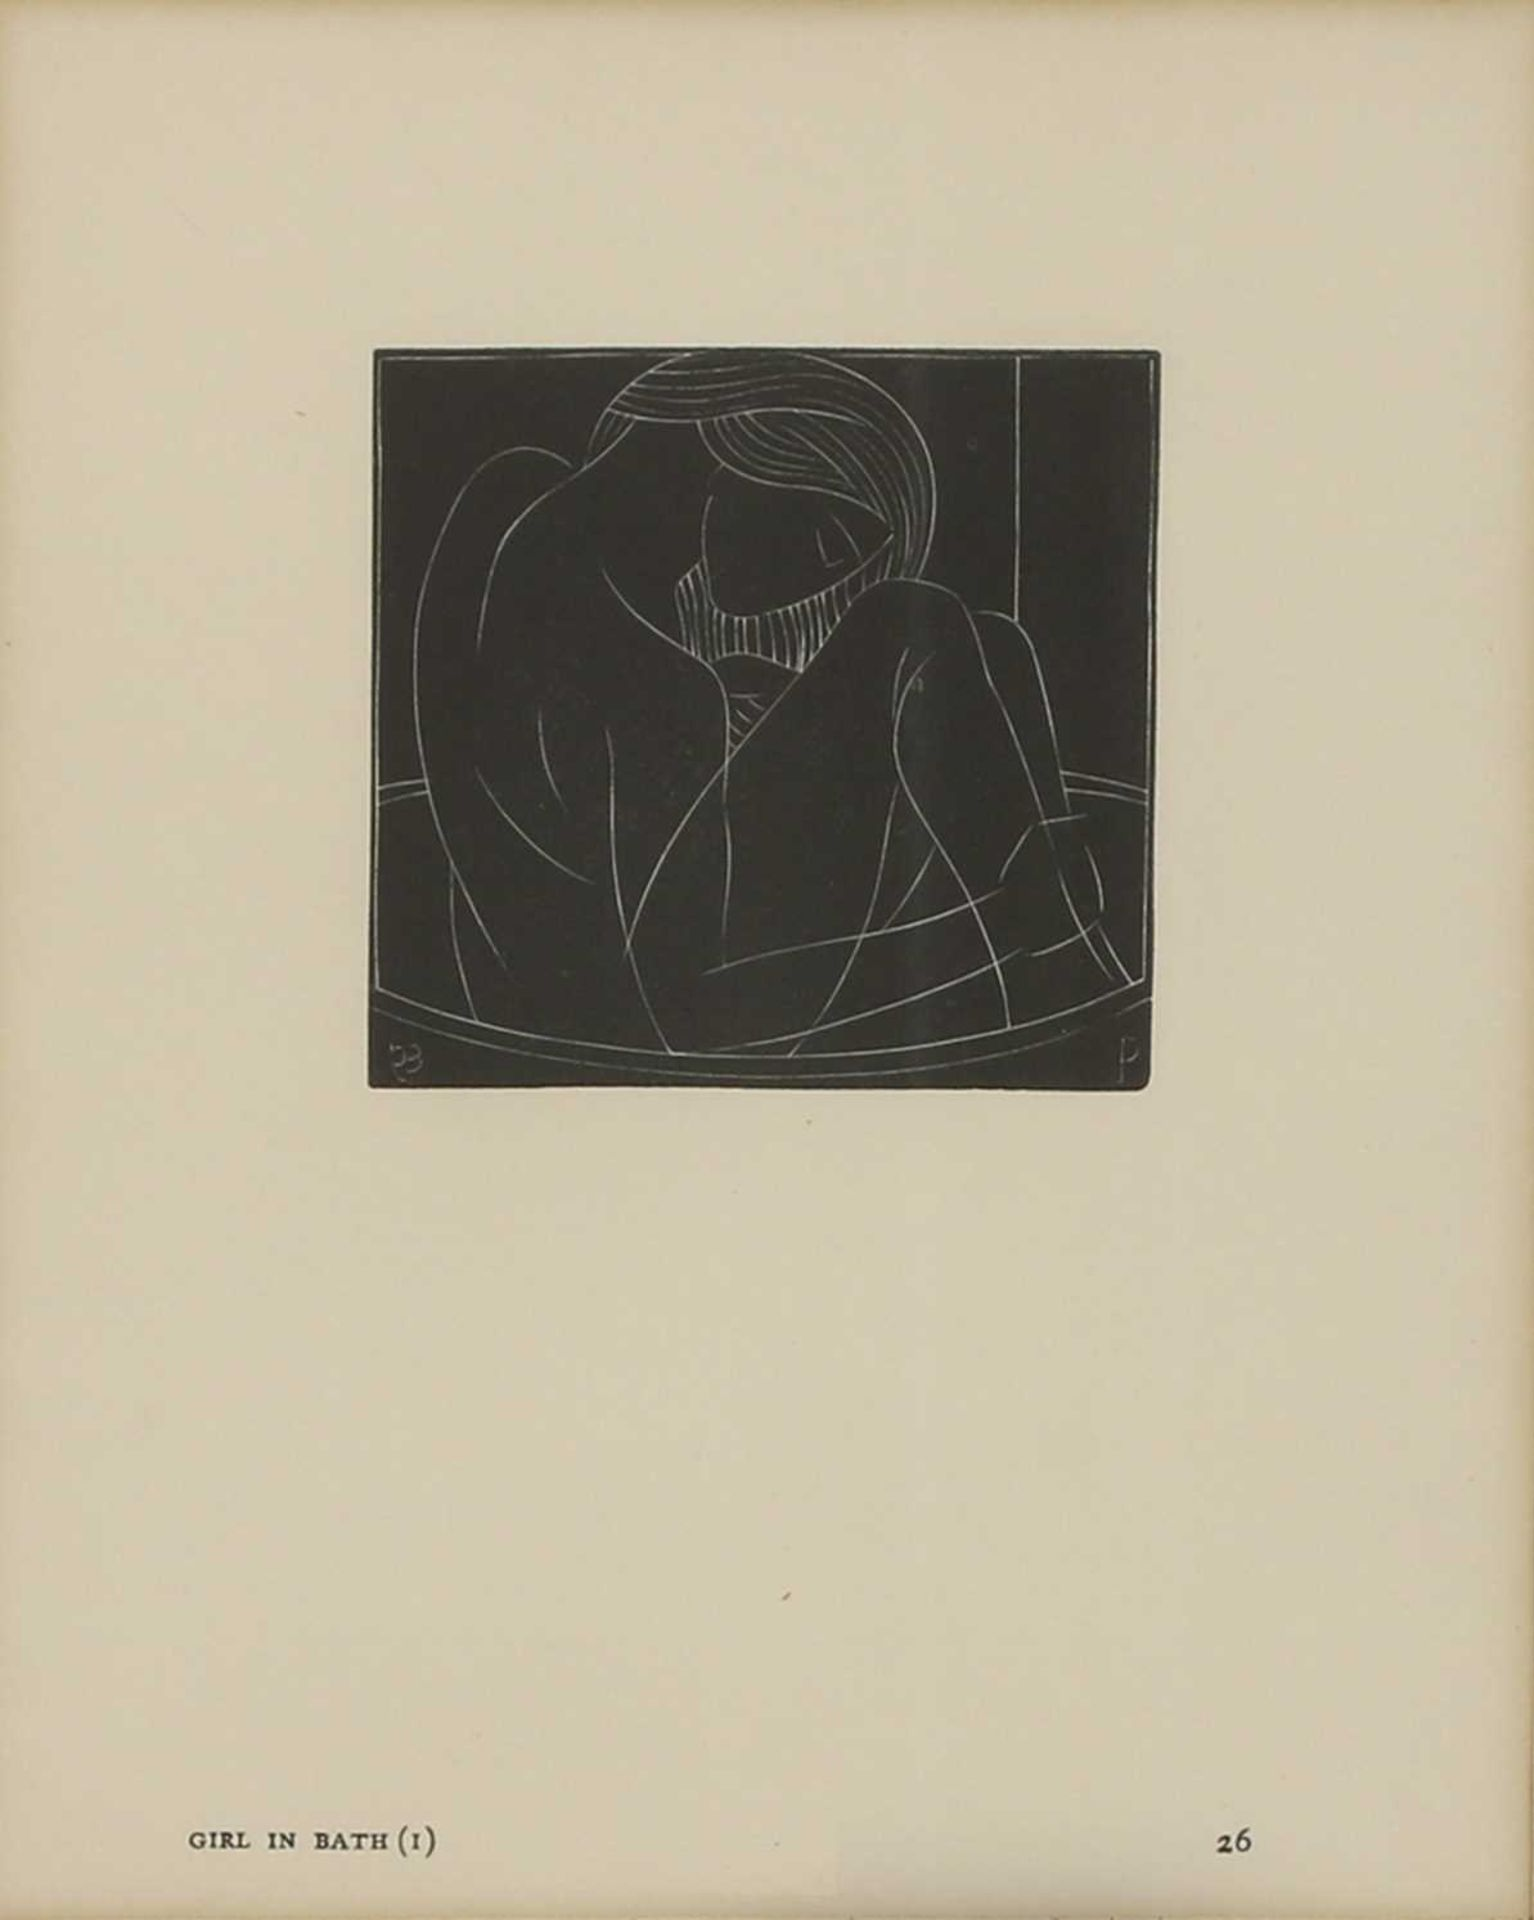 Eric Gill (1882-1940) - Image 4 of 4